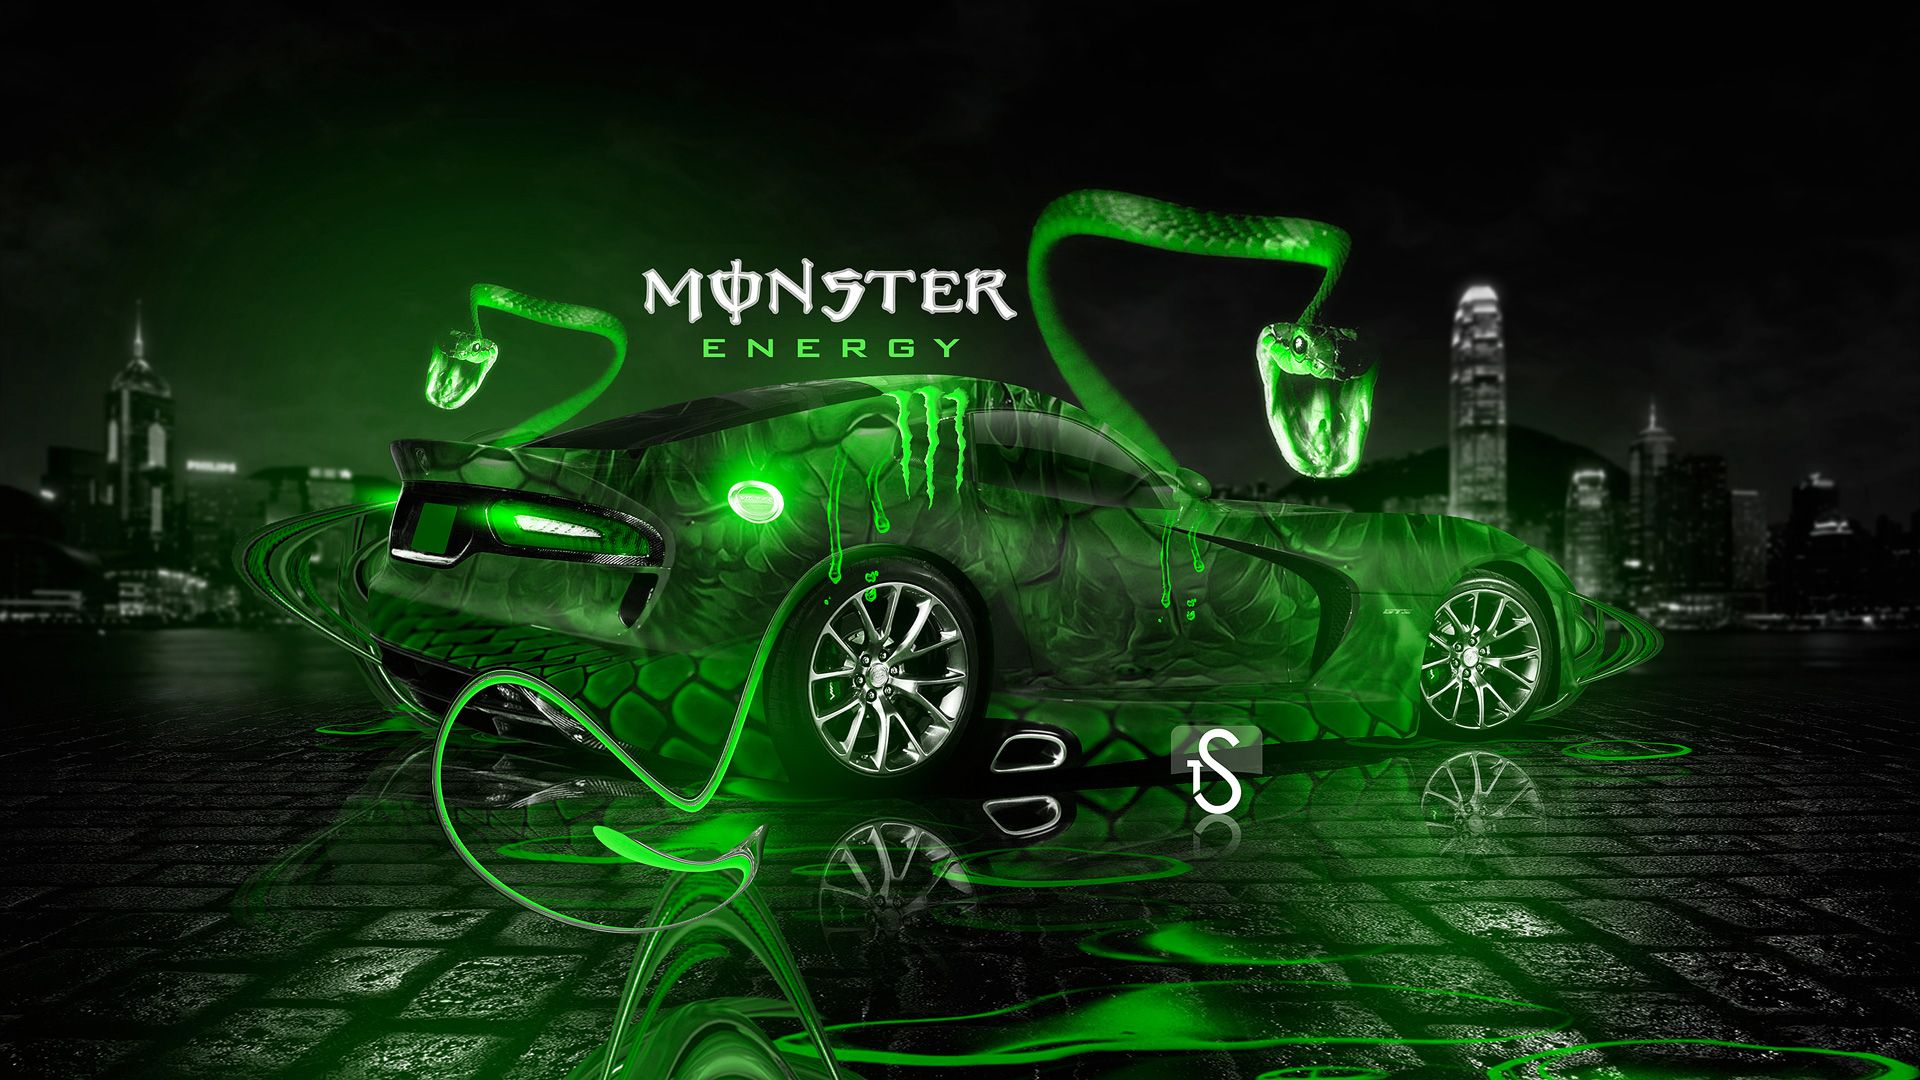 Elegant 1920 X 1080 Px Monster Energy Backround For Mac Computers By Barbara  Williams